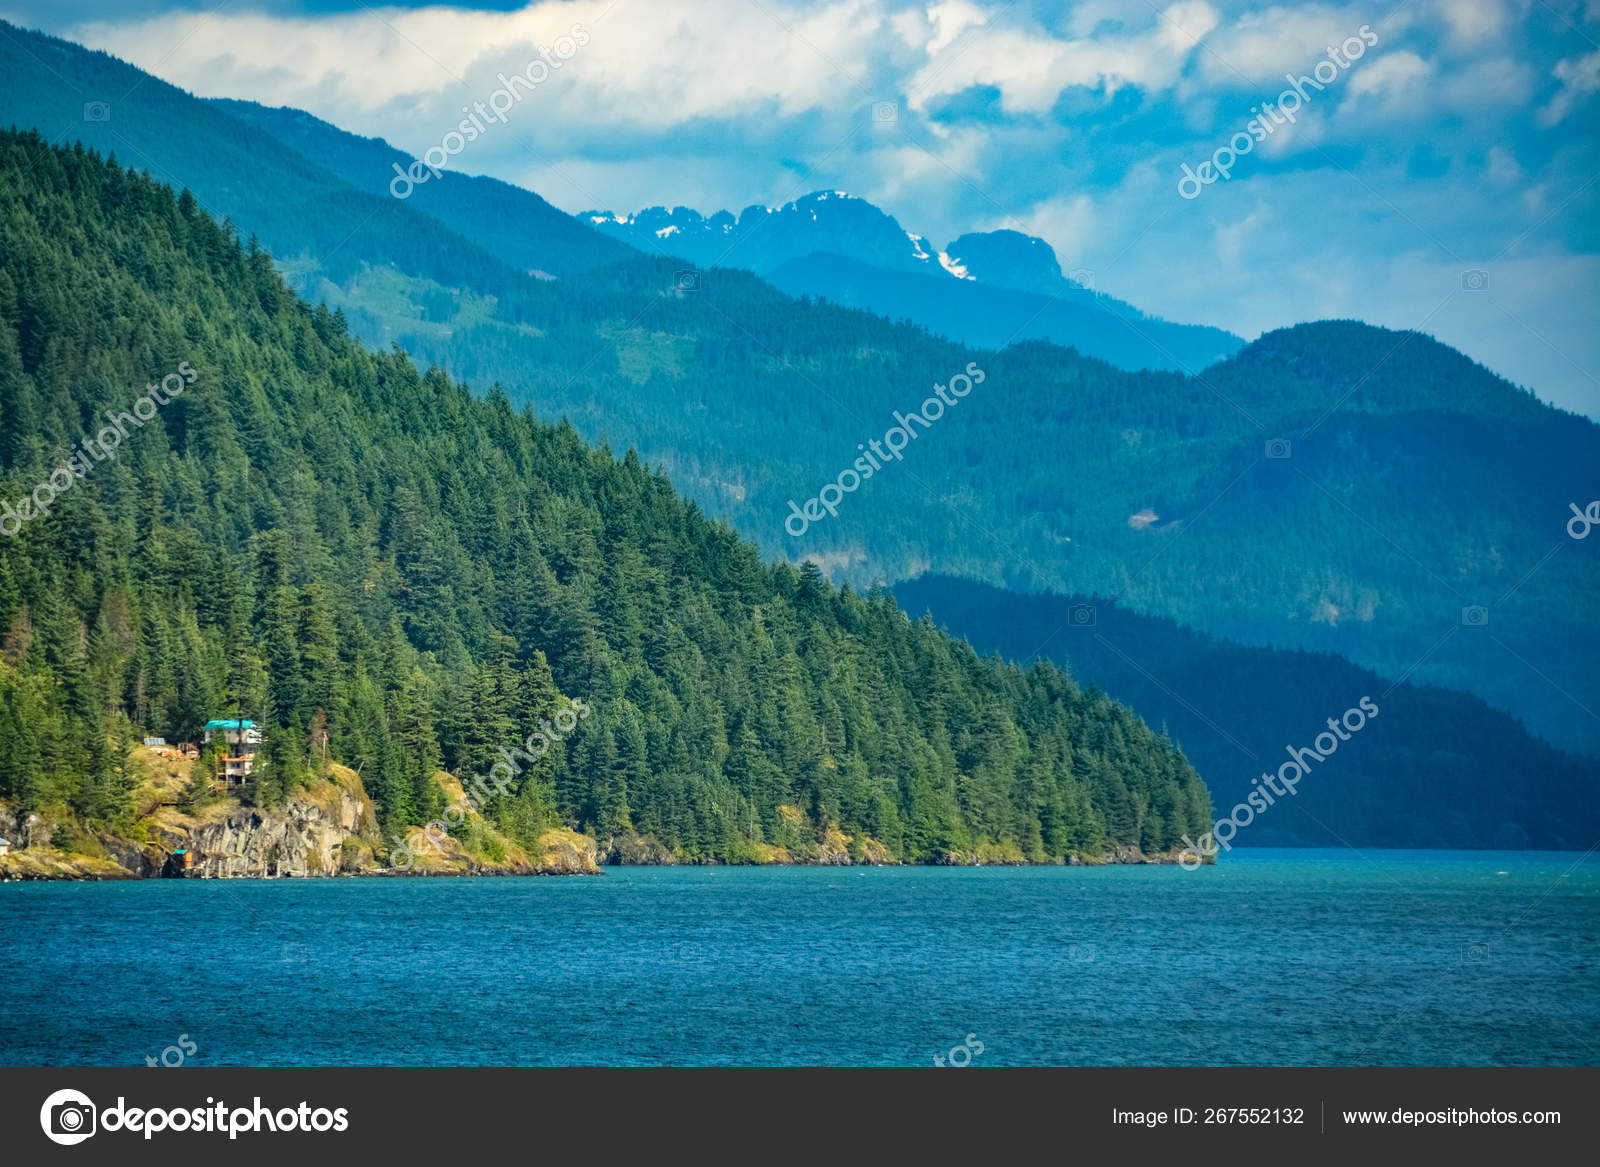 Harrison lake overview with residential house on the shore